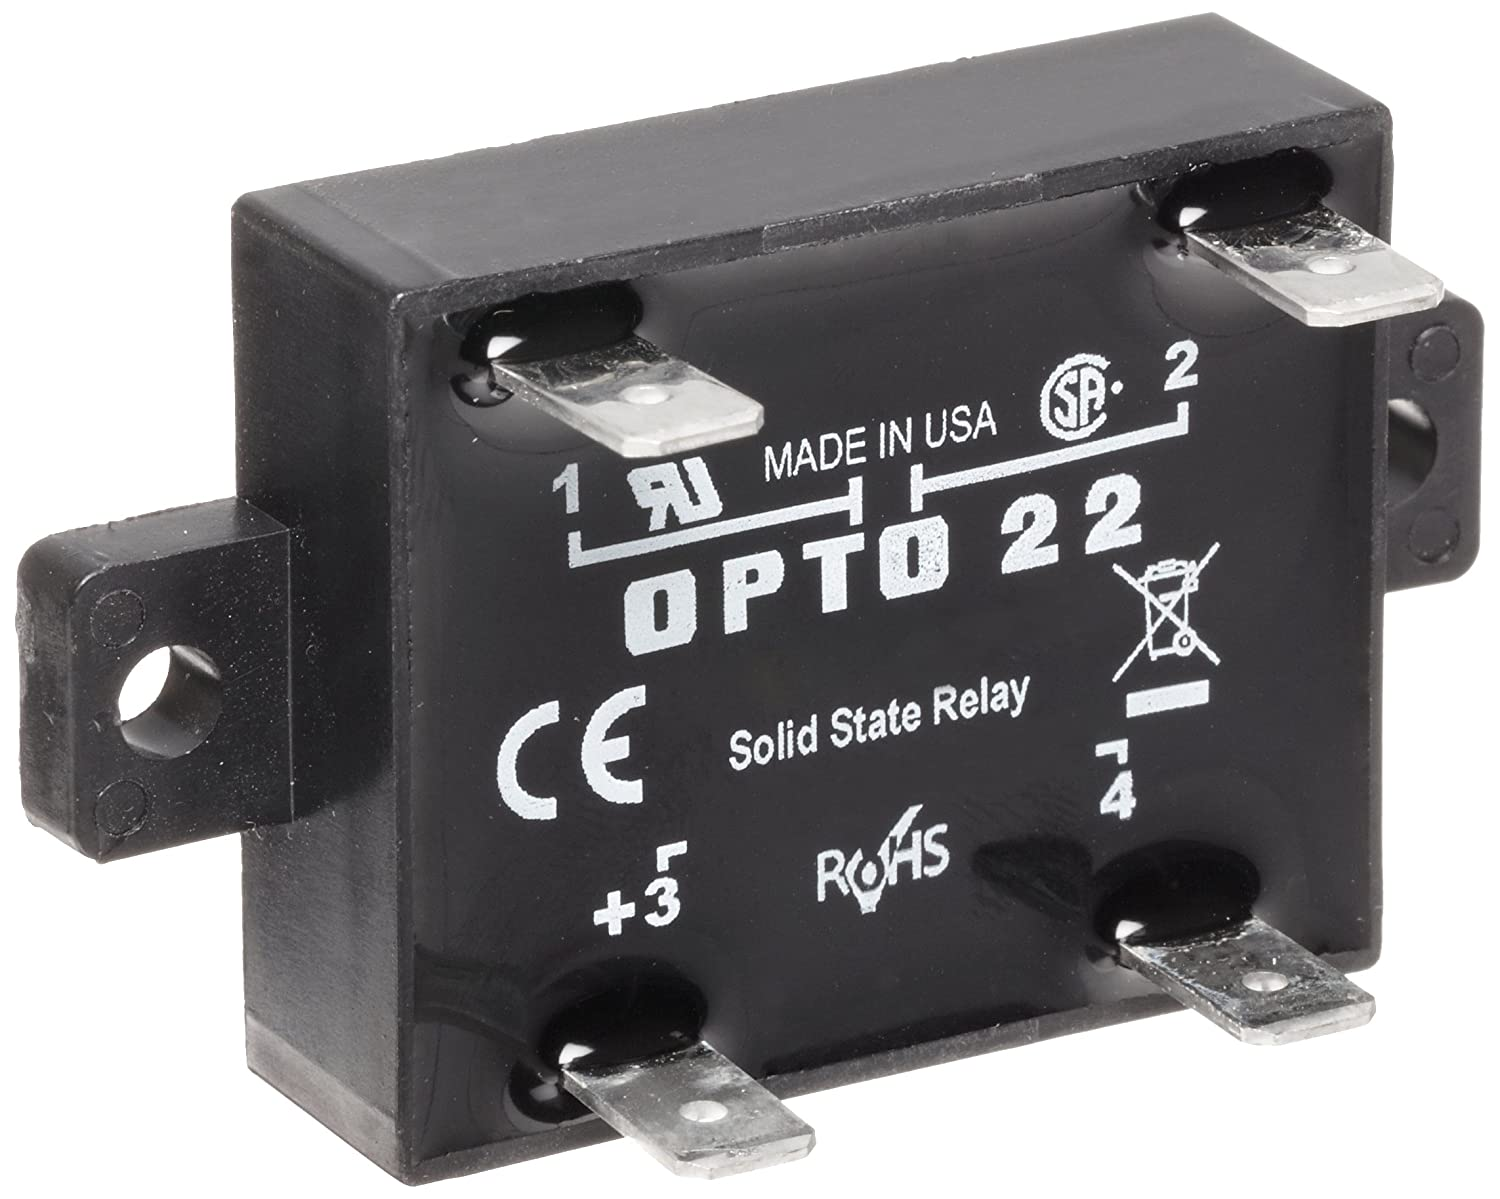 Opto 22 Z240D10 Z Model DC Control Solid State Relay, 240 VAC, 10 Amp:  Electronic Relays: Amazon.com: Industrial & Scientific